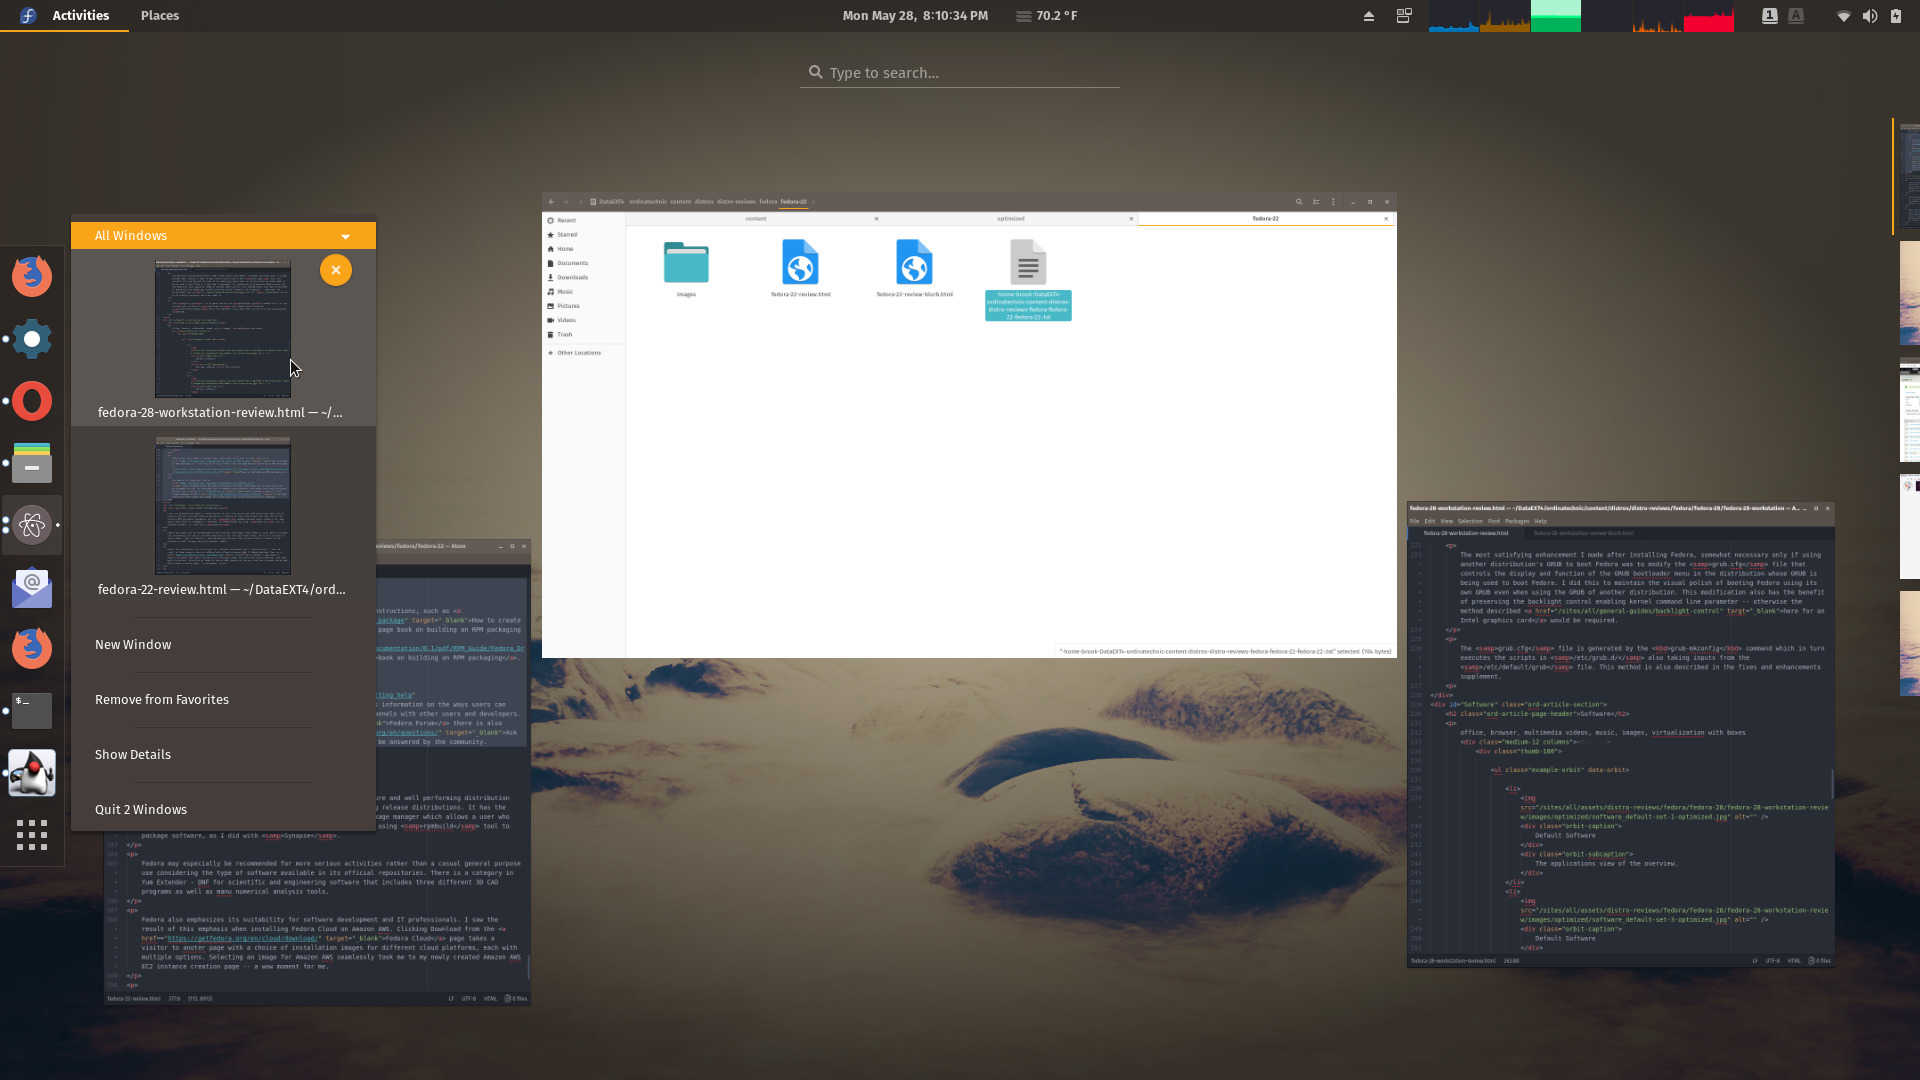 Fedora 28 Workstation Review | ORDINATECHNIC